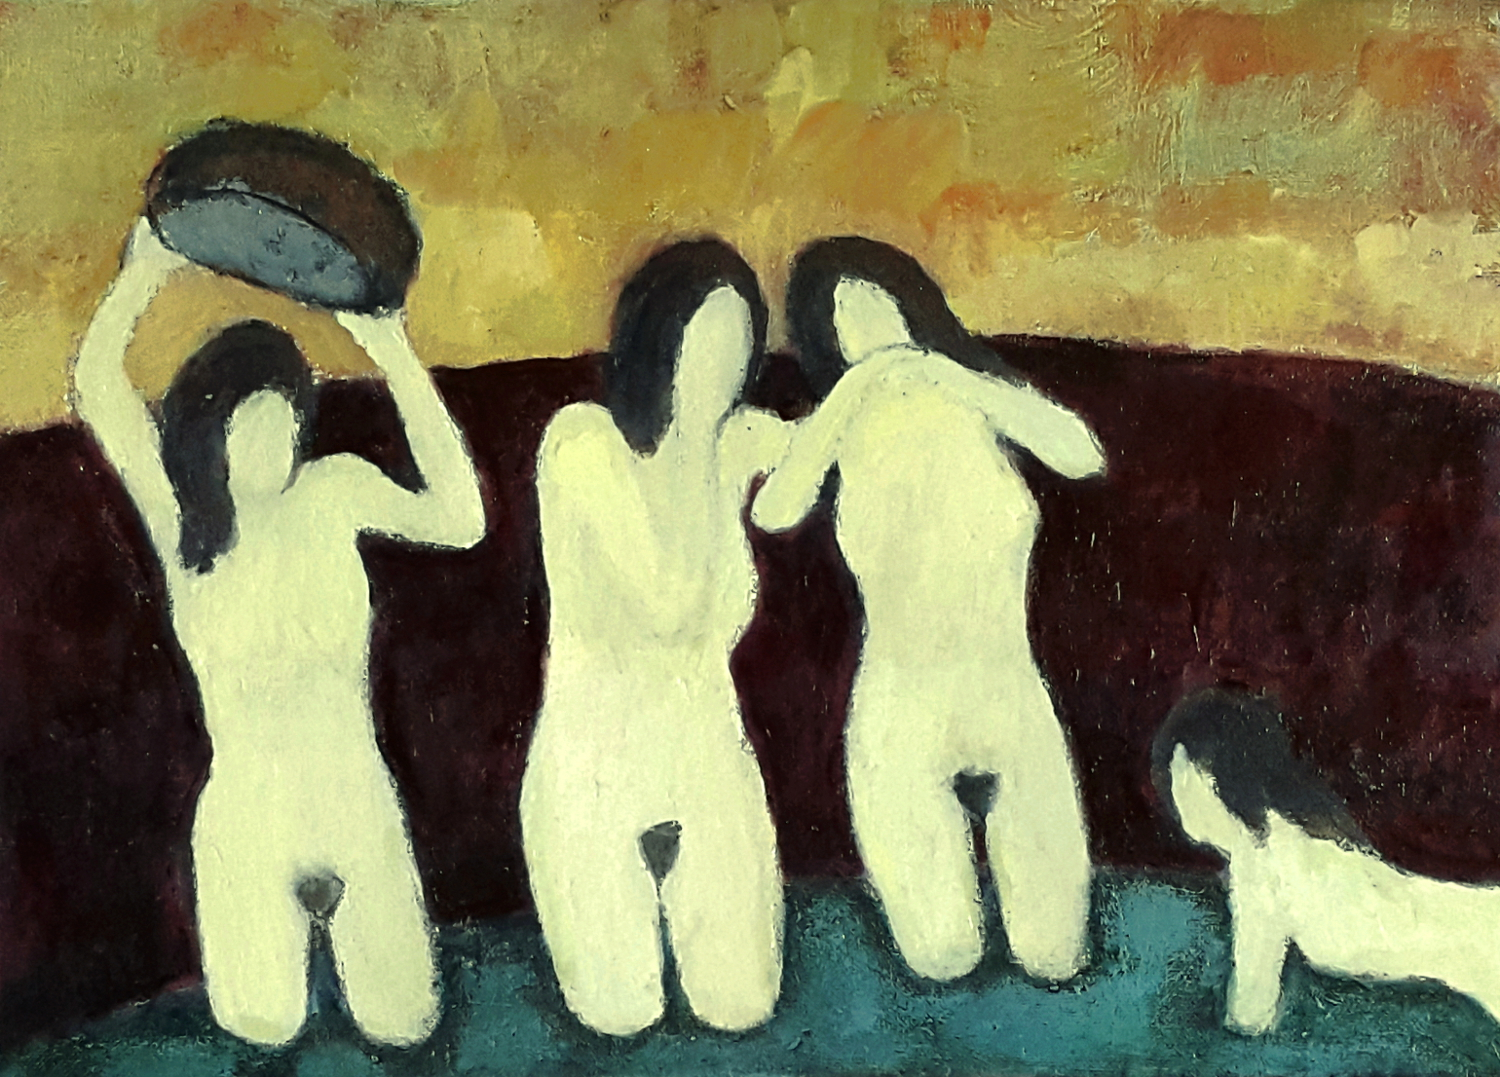 The Bathers 46 x 33 cm oil on canvas - web format